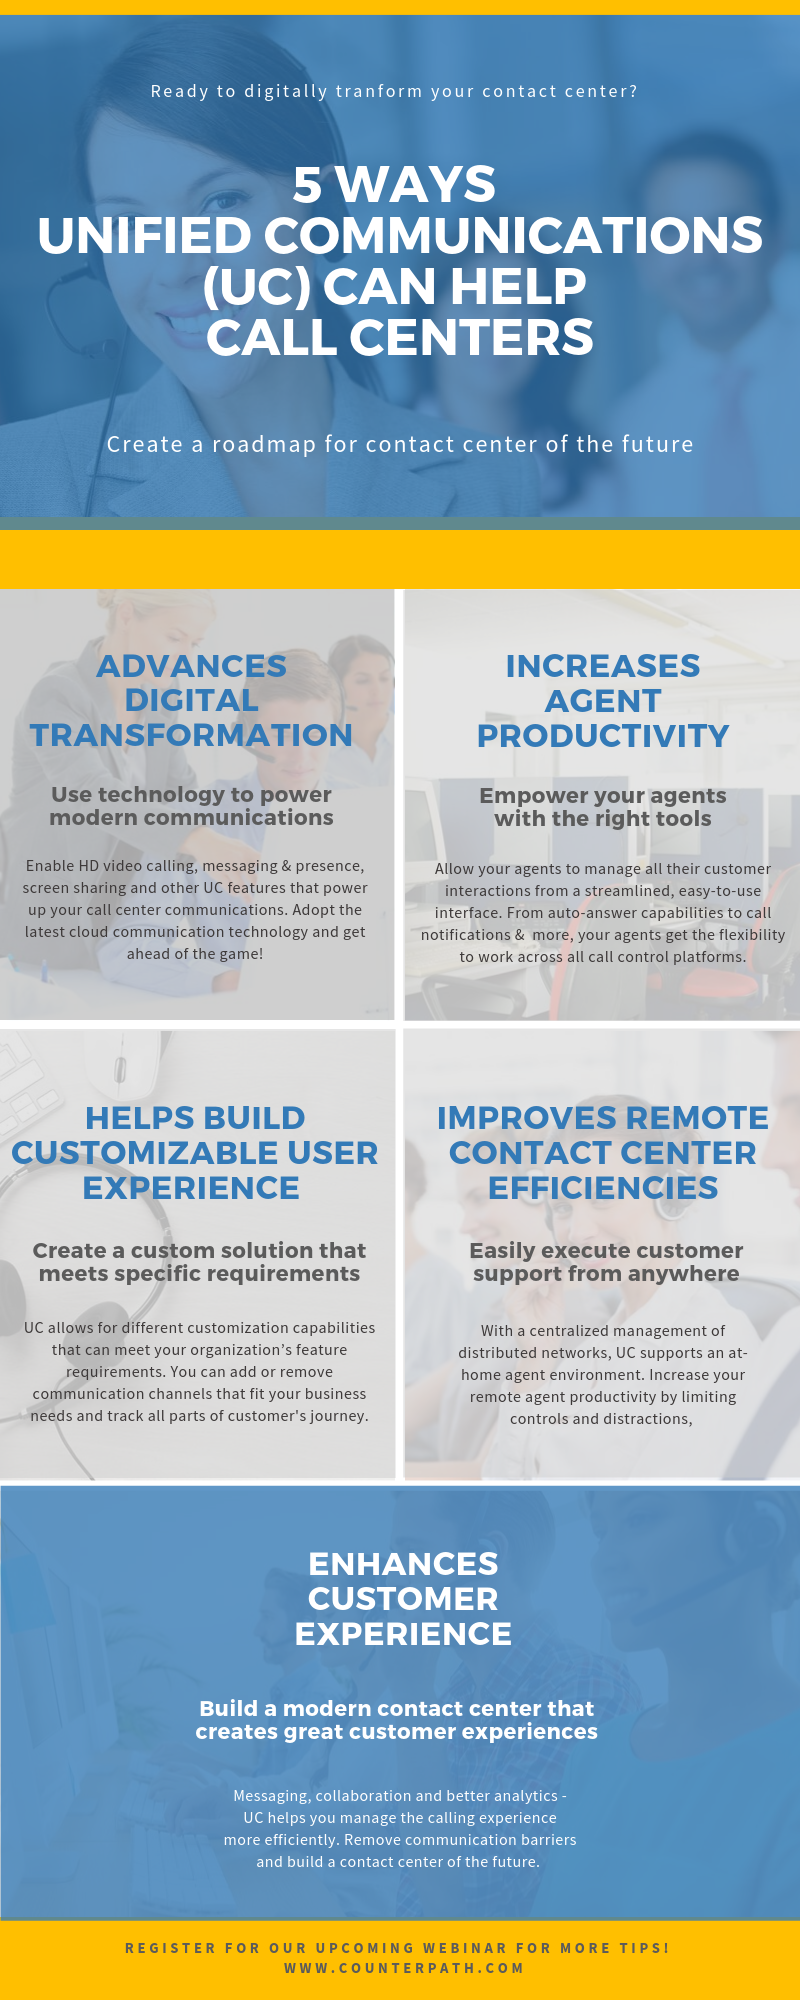 5 Ways UC can help Contact Centers_livewebinarversion